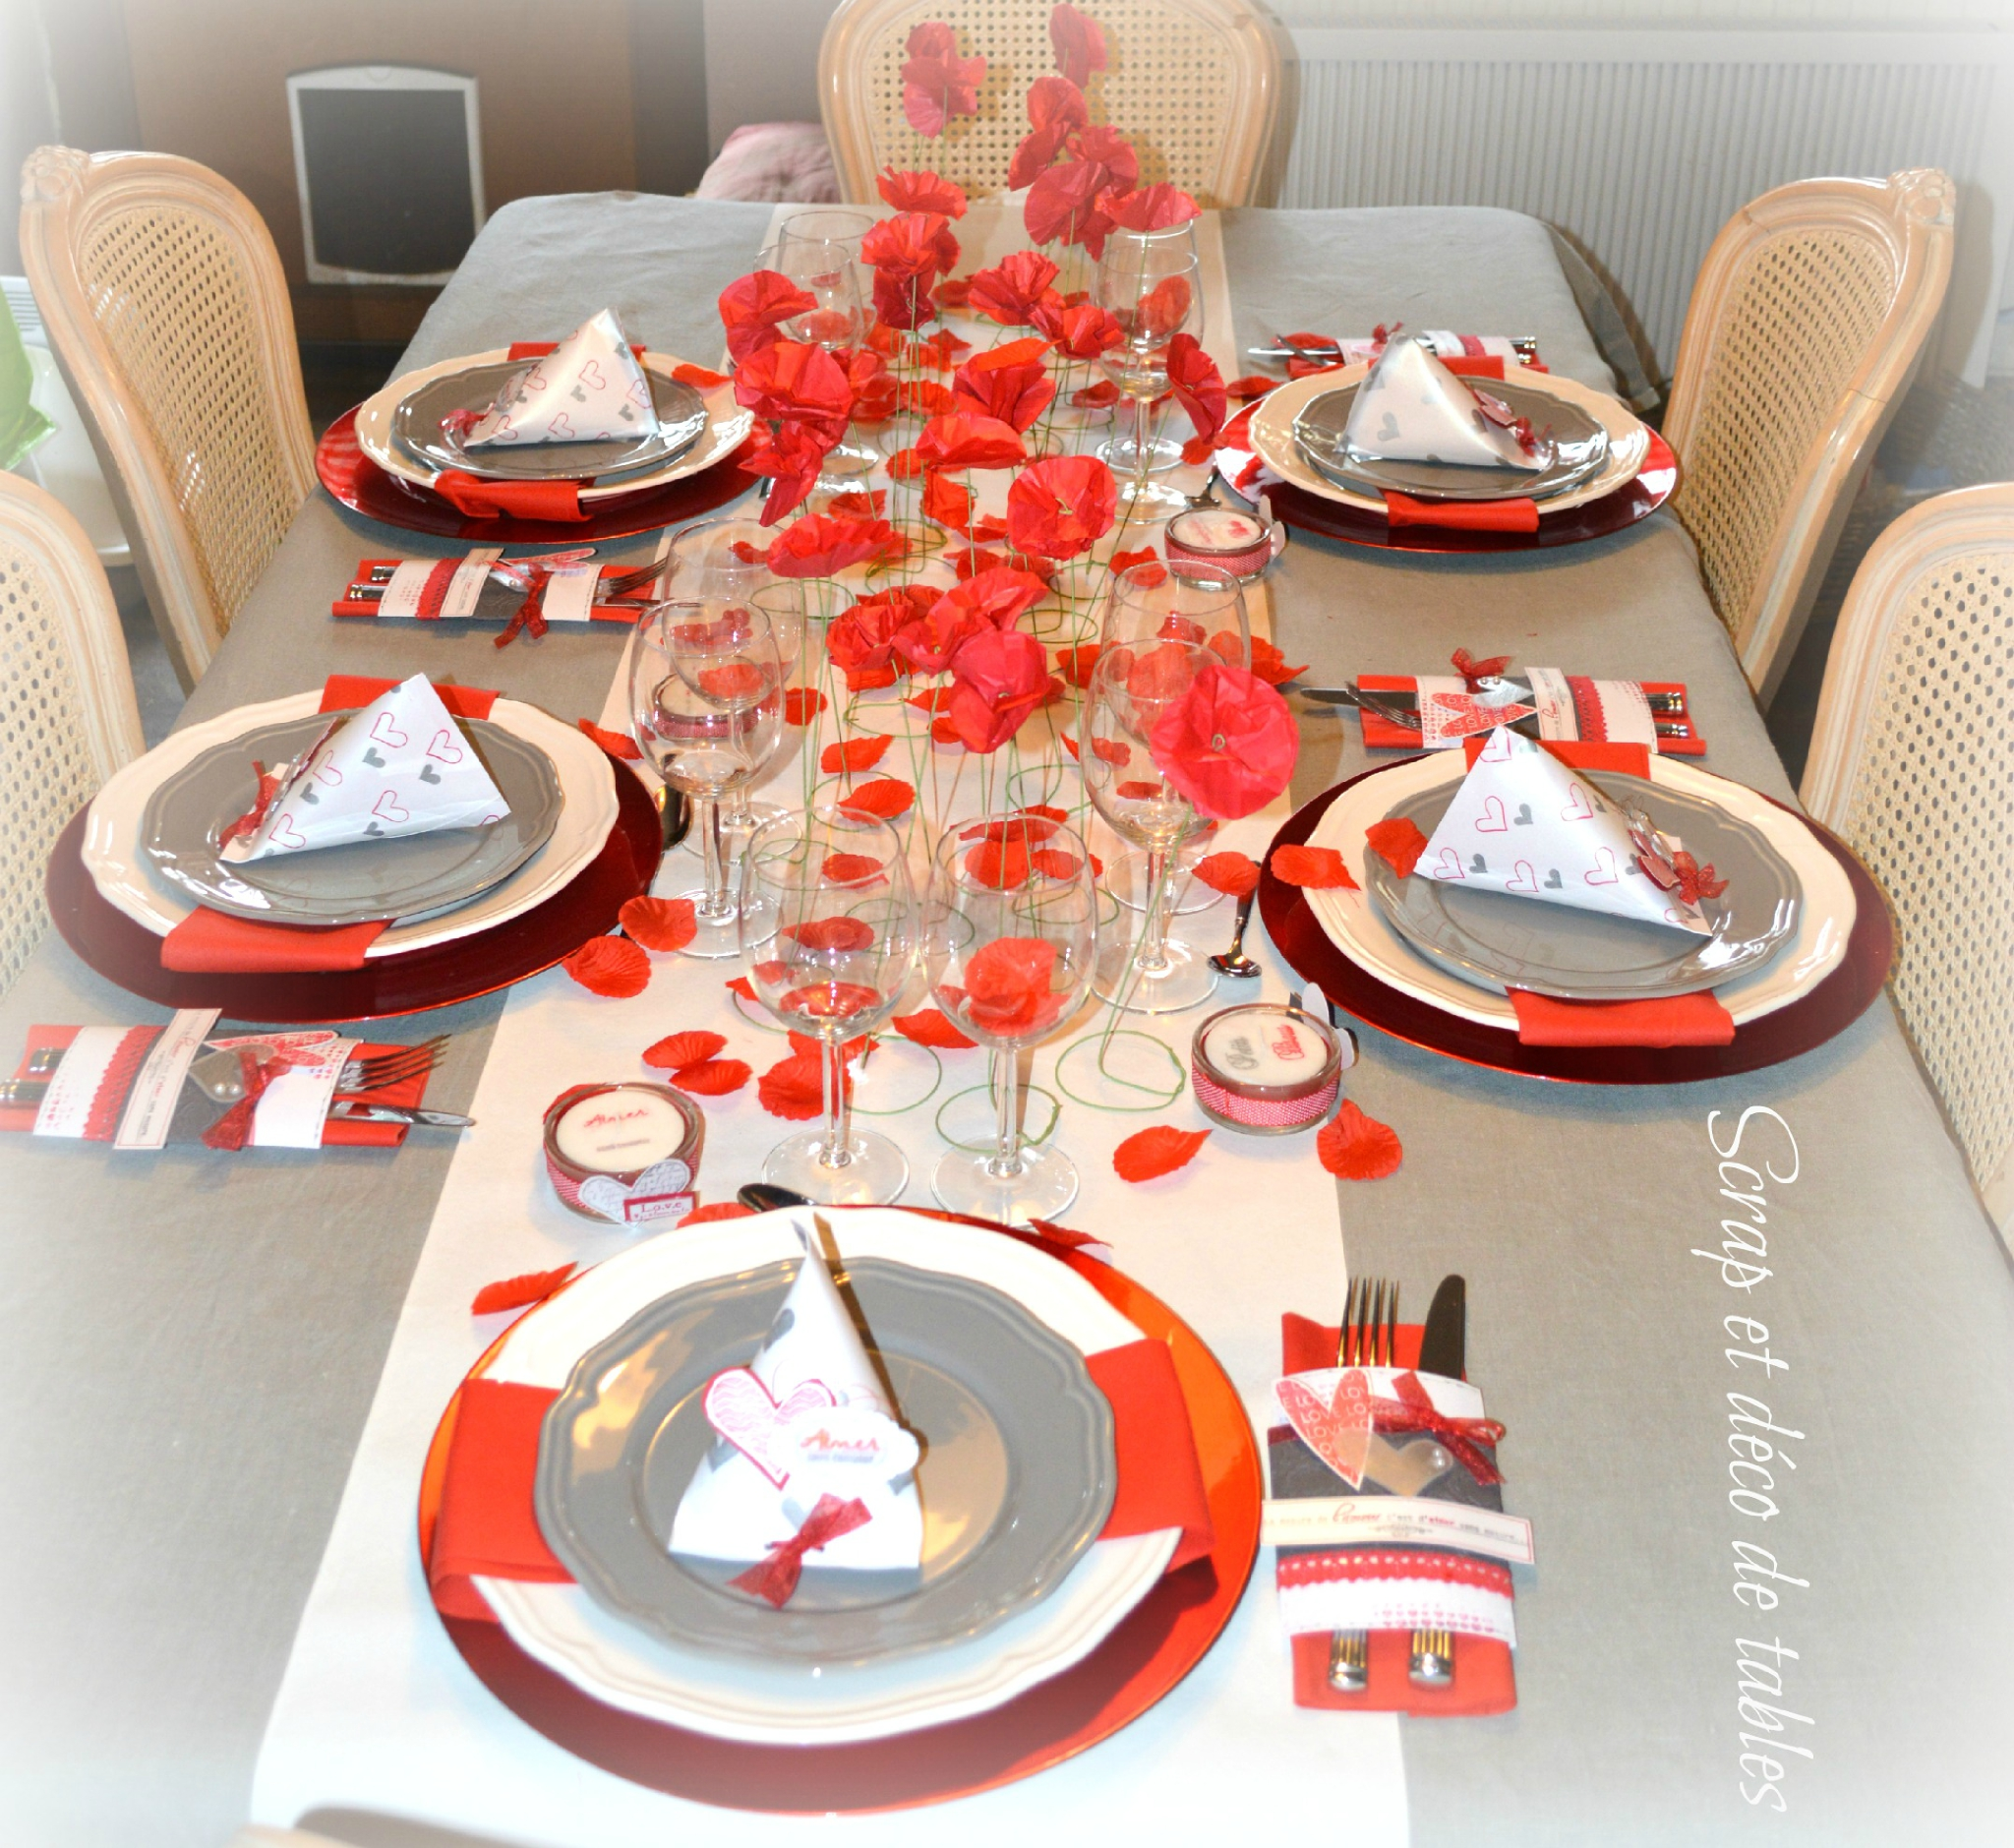 Deco de table saint valentin 2015 scrap et d co de tables for Deco saint valentin